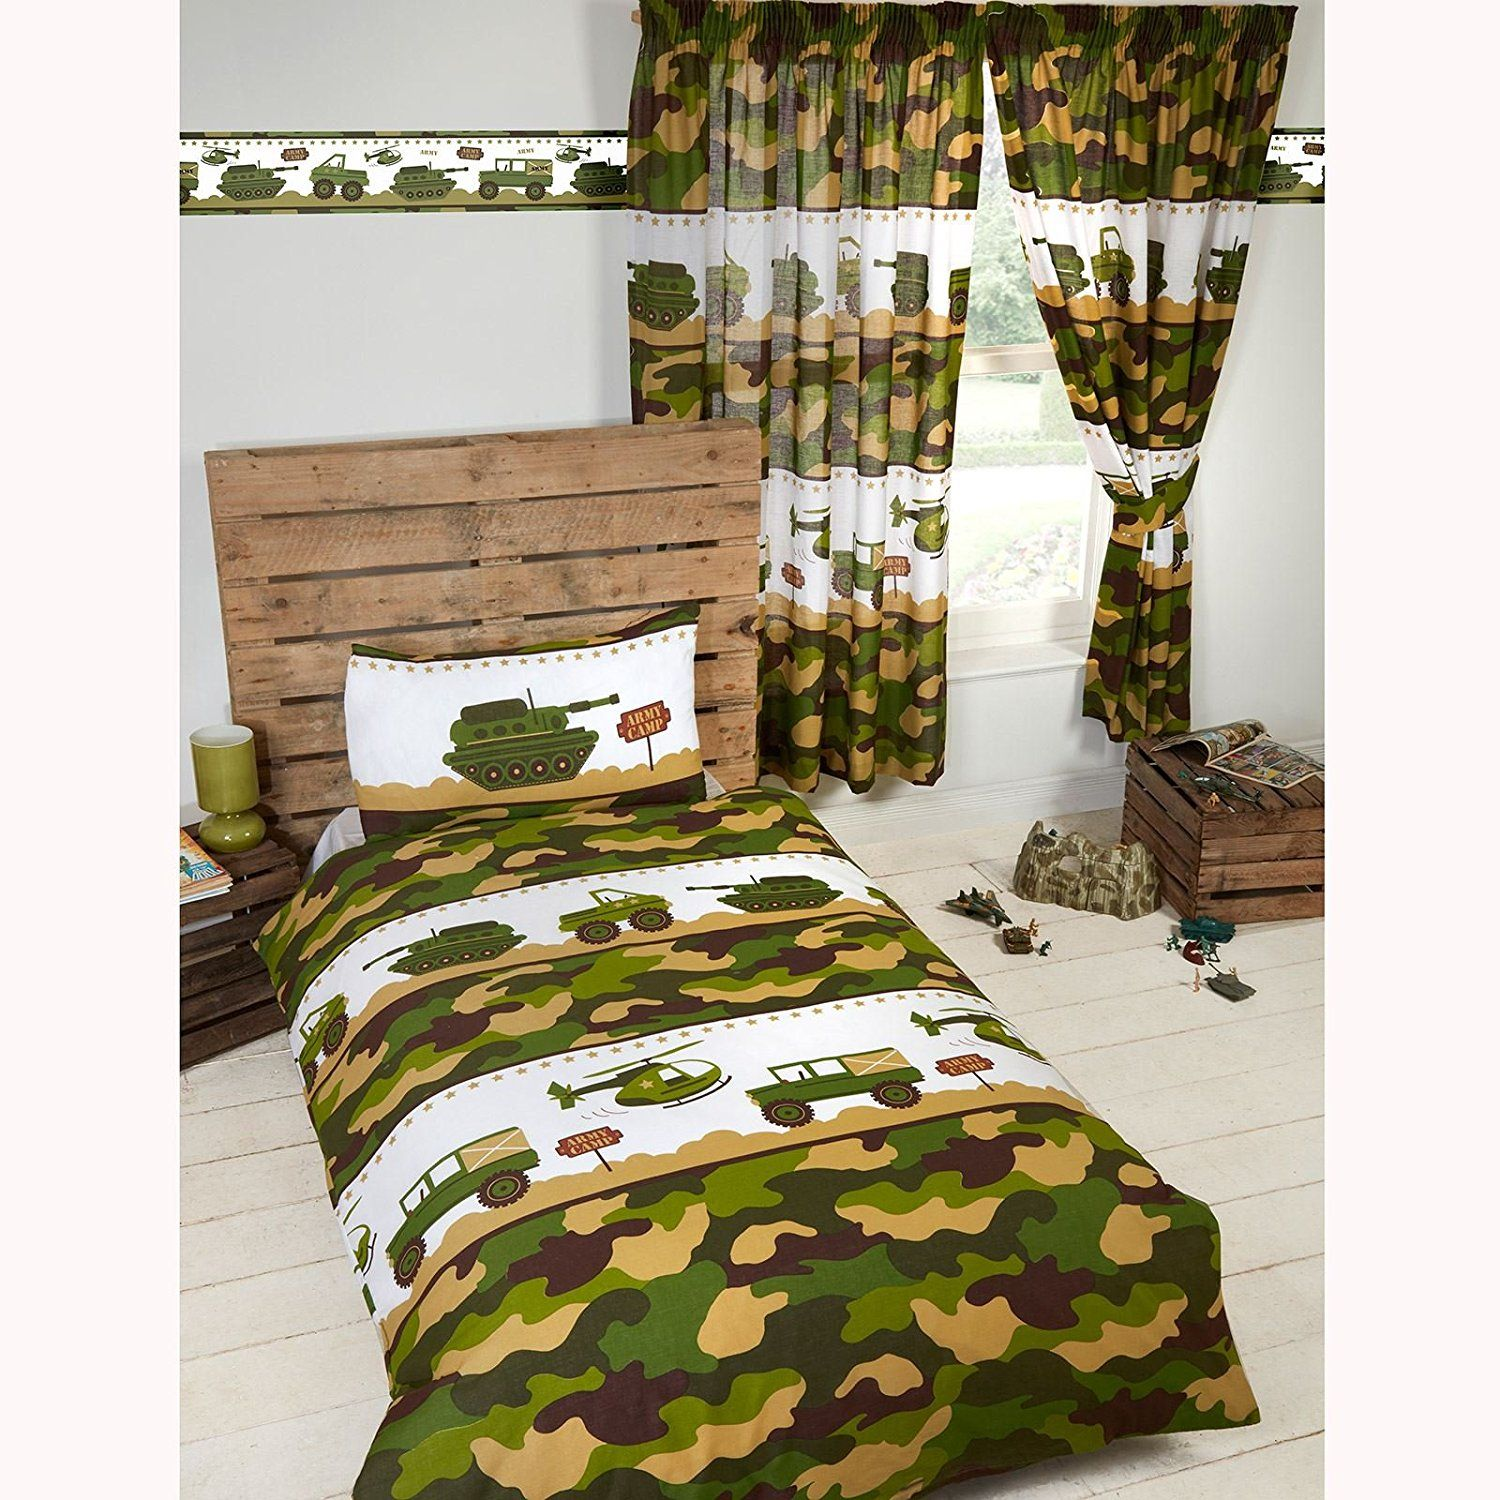 Military Camo Bedding Sets Army Camp 4 In 1 Junior Toddler Bedding Bundle Set Duvet Pillow And Covers Camou Army Bedroom Single Duvet Single Duvet Cover